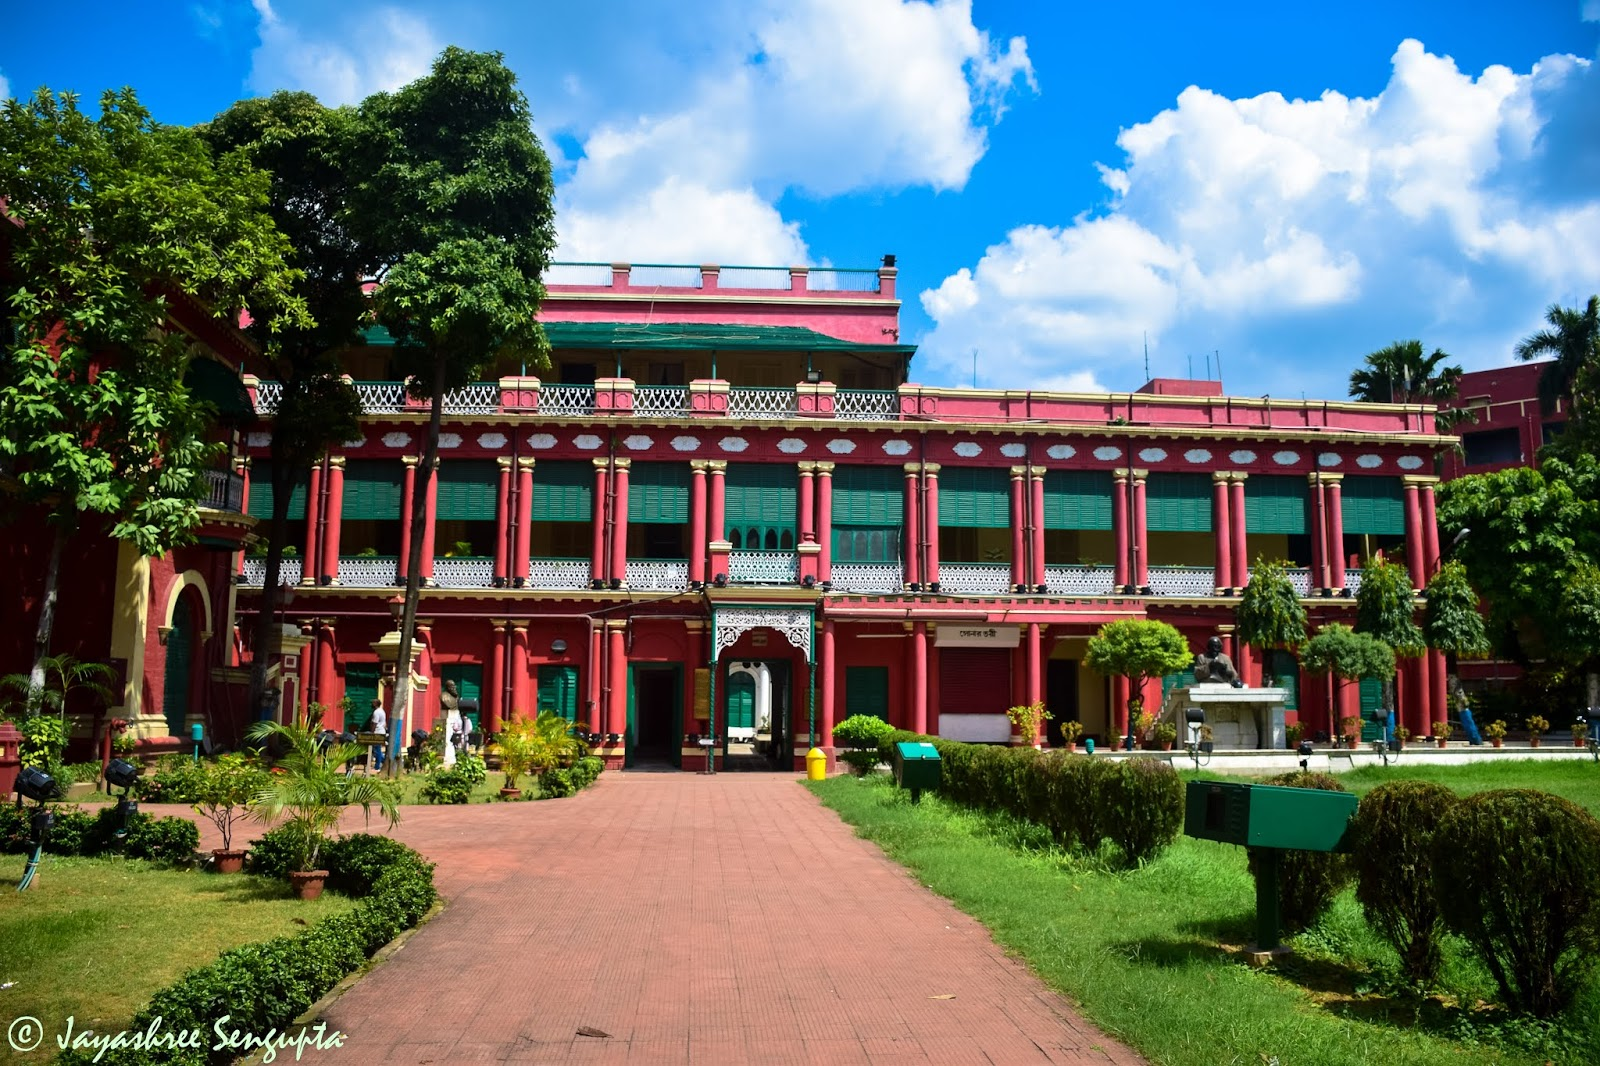 The frontal view of Thakurbari